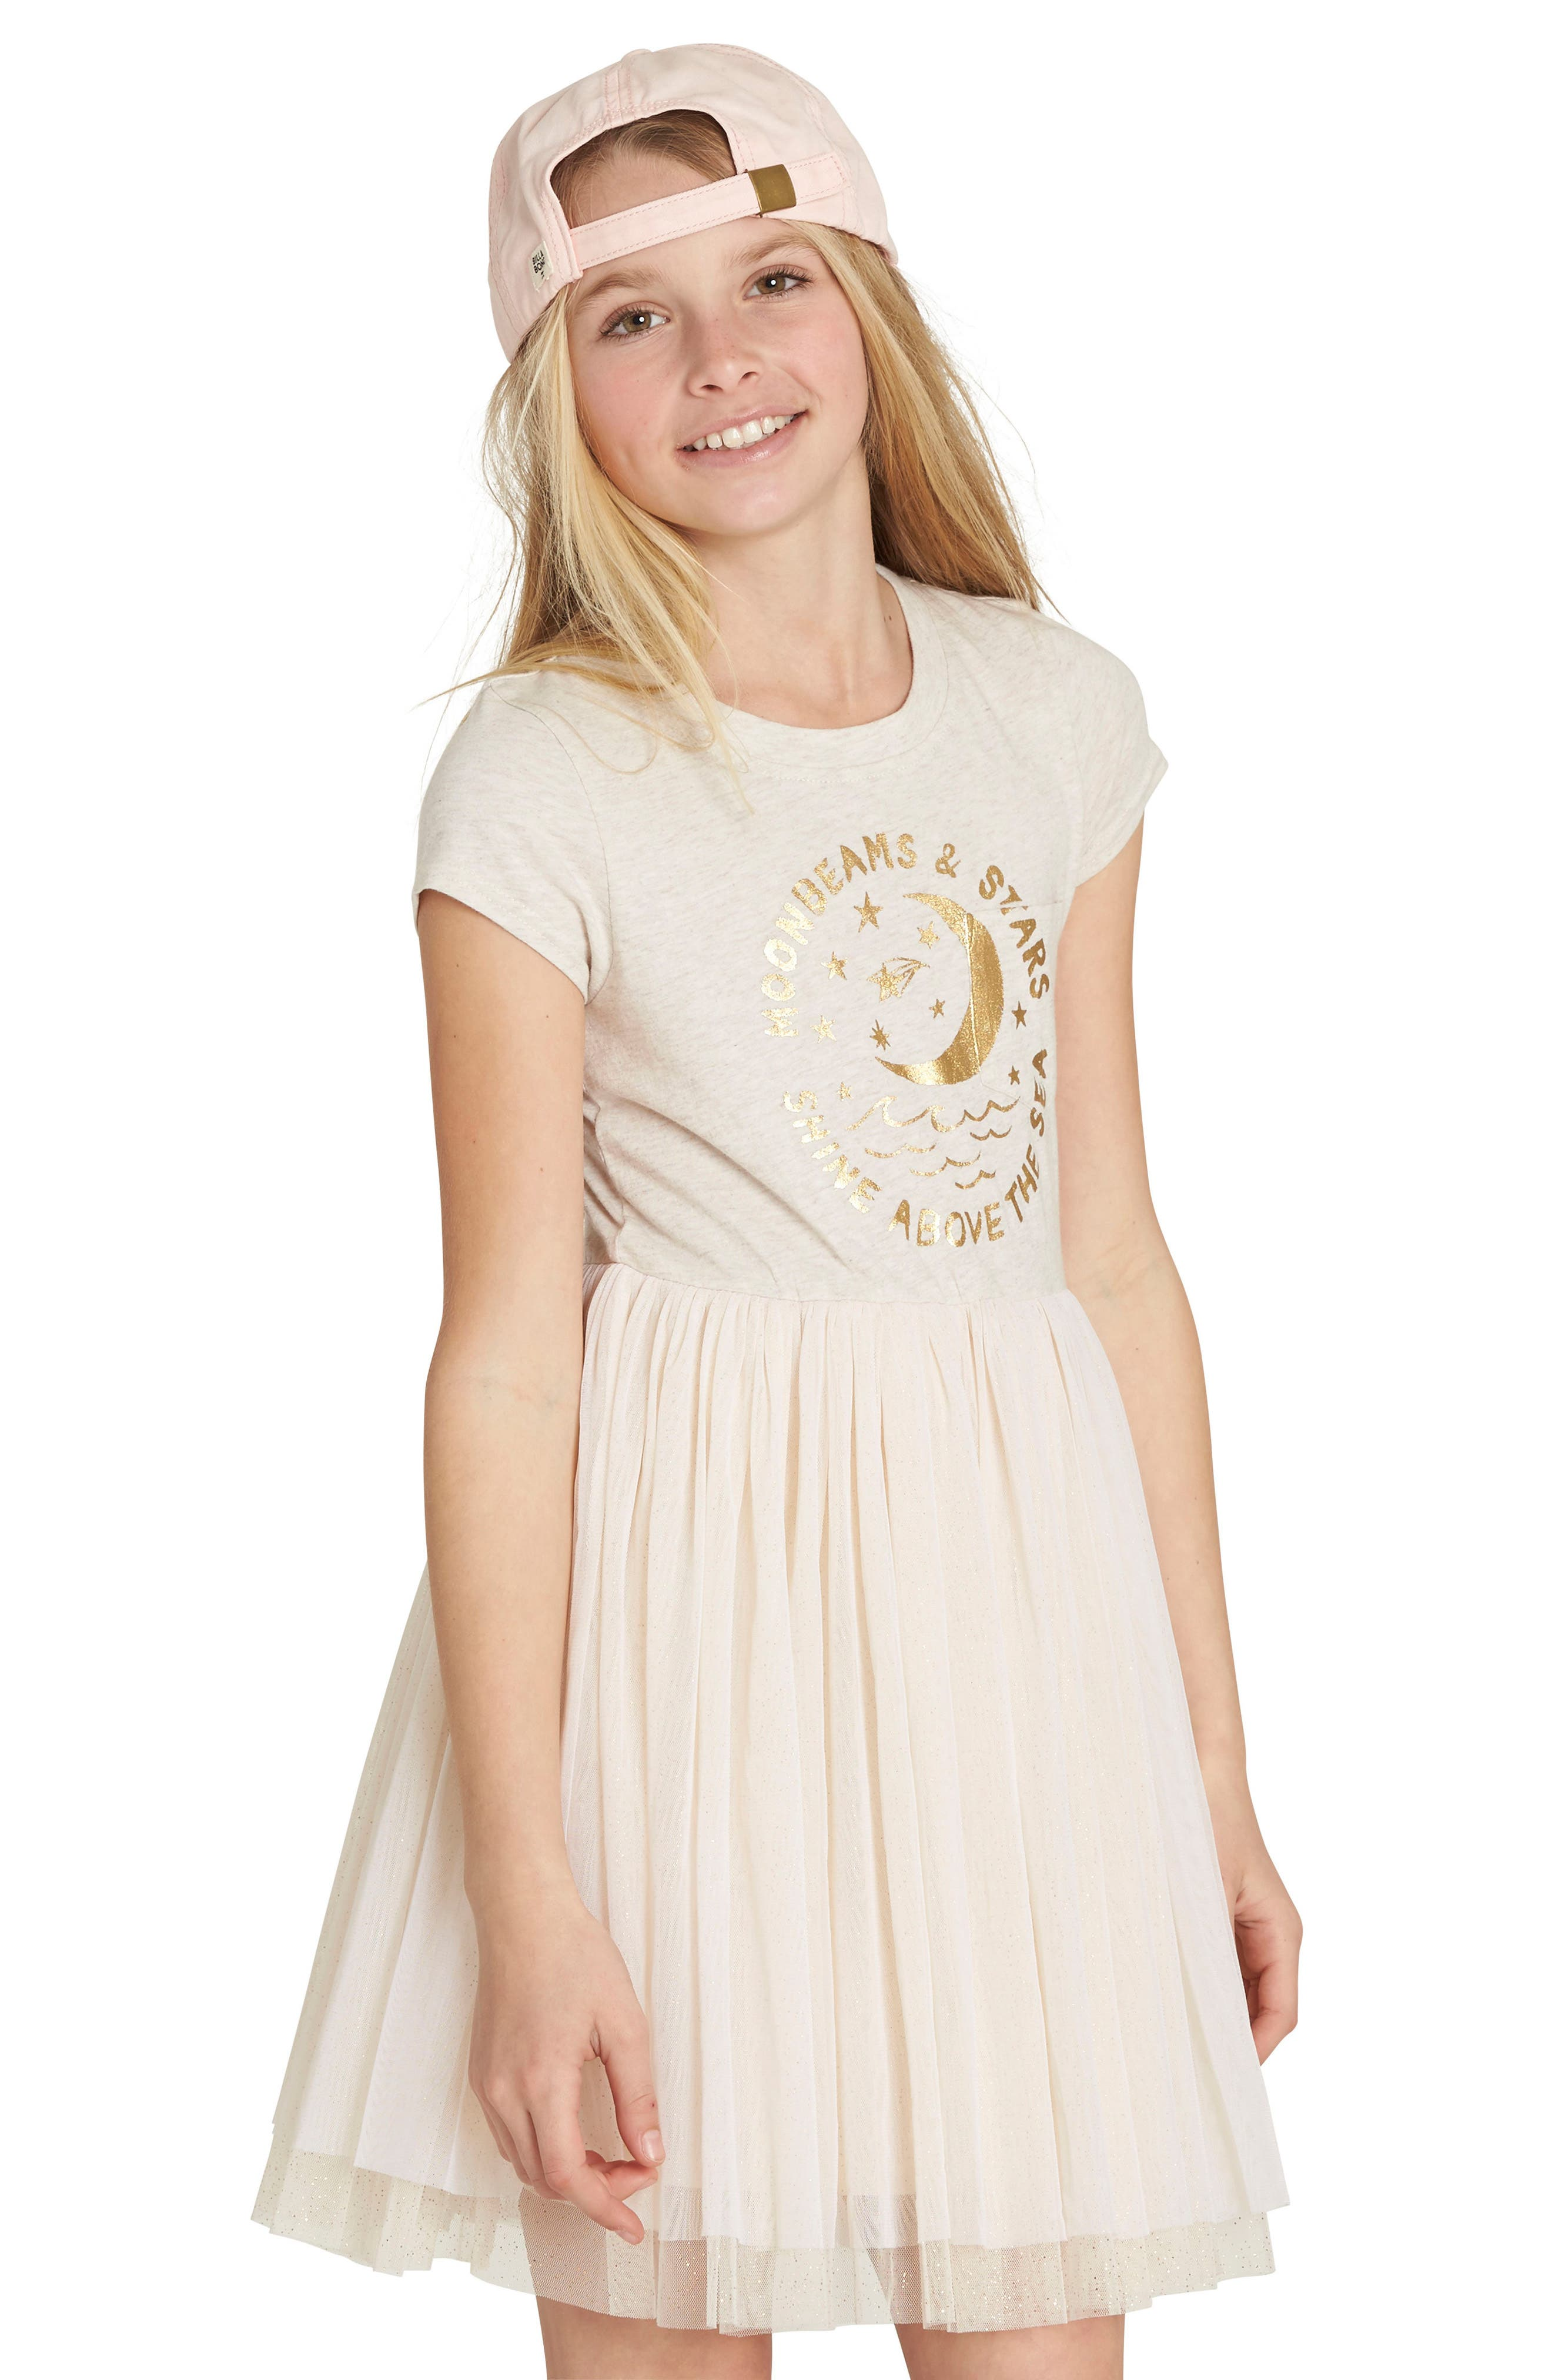 Sunkissed Nights Mixed Media Dress,                         Main,                         color, White Cap